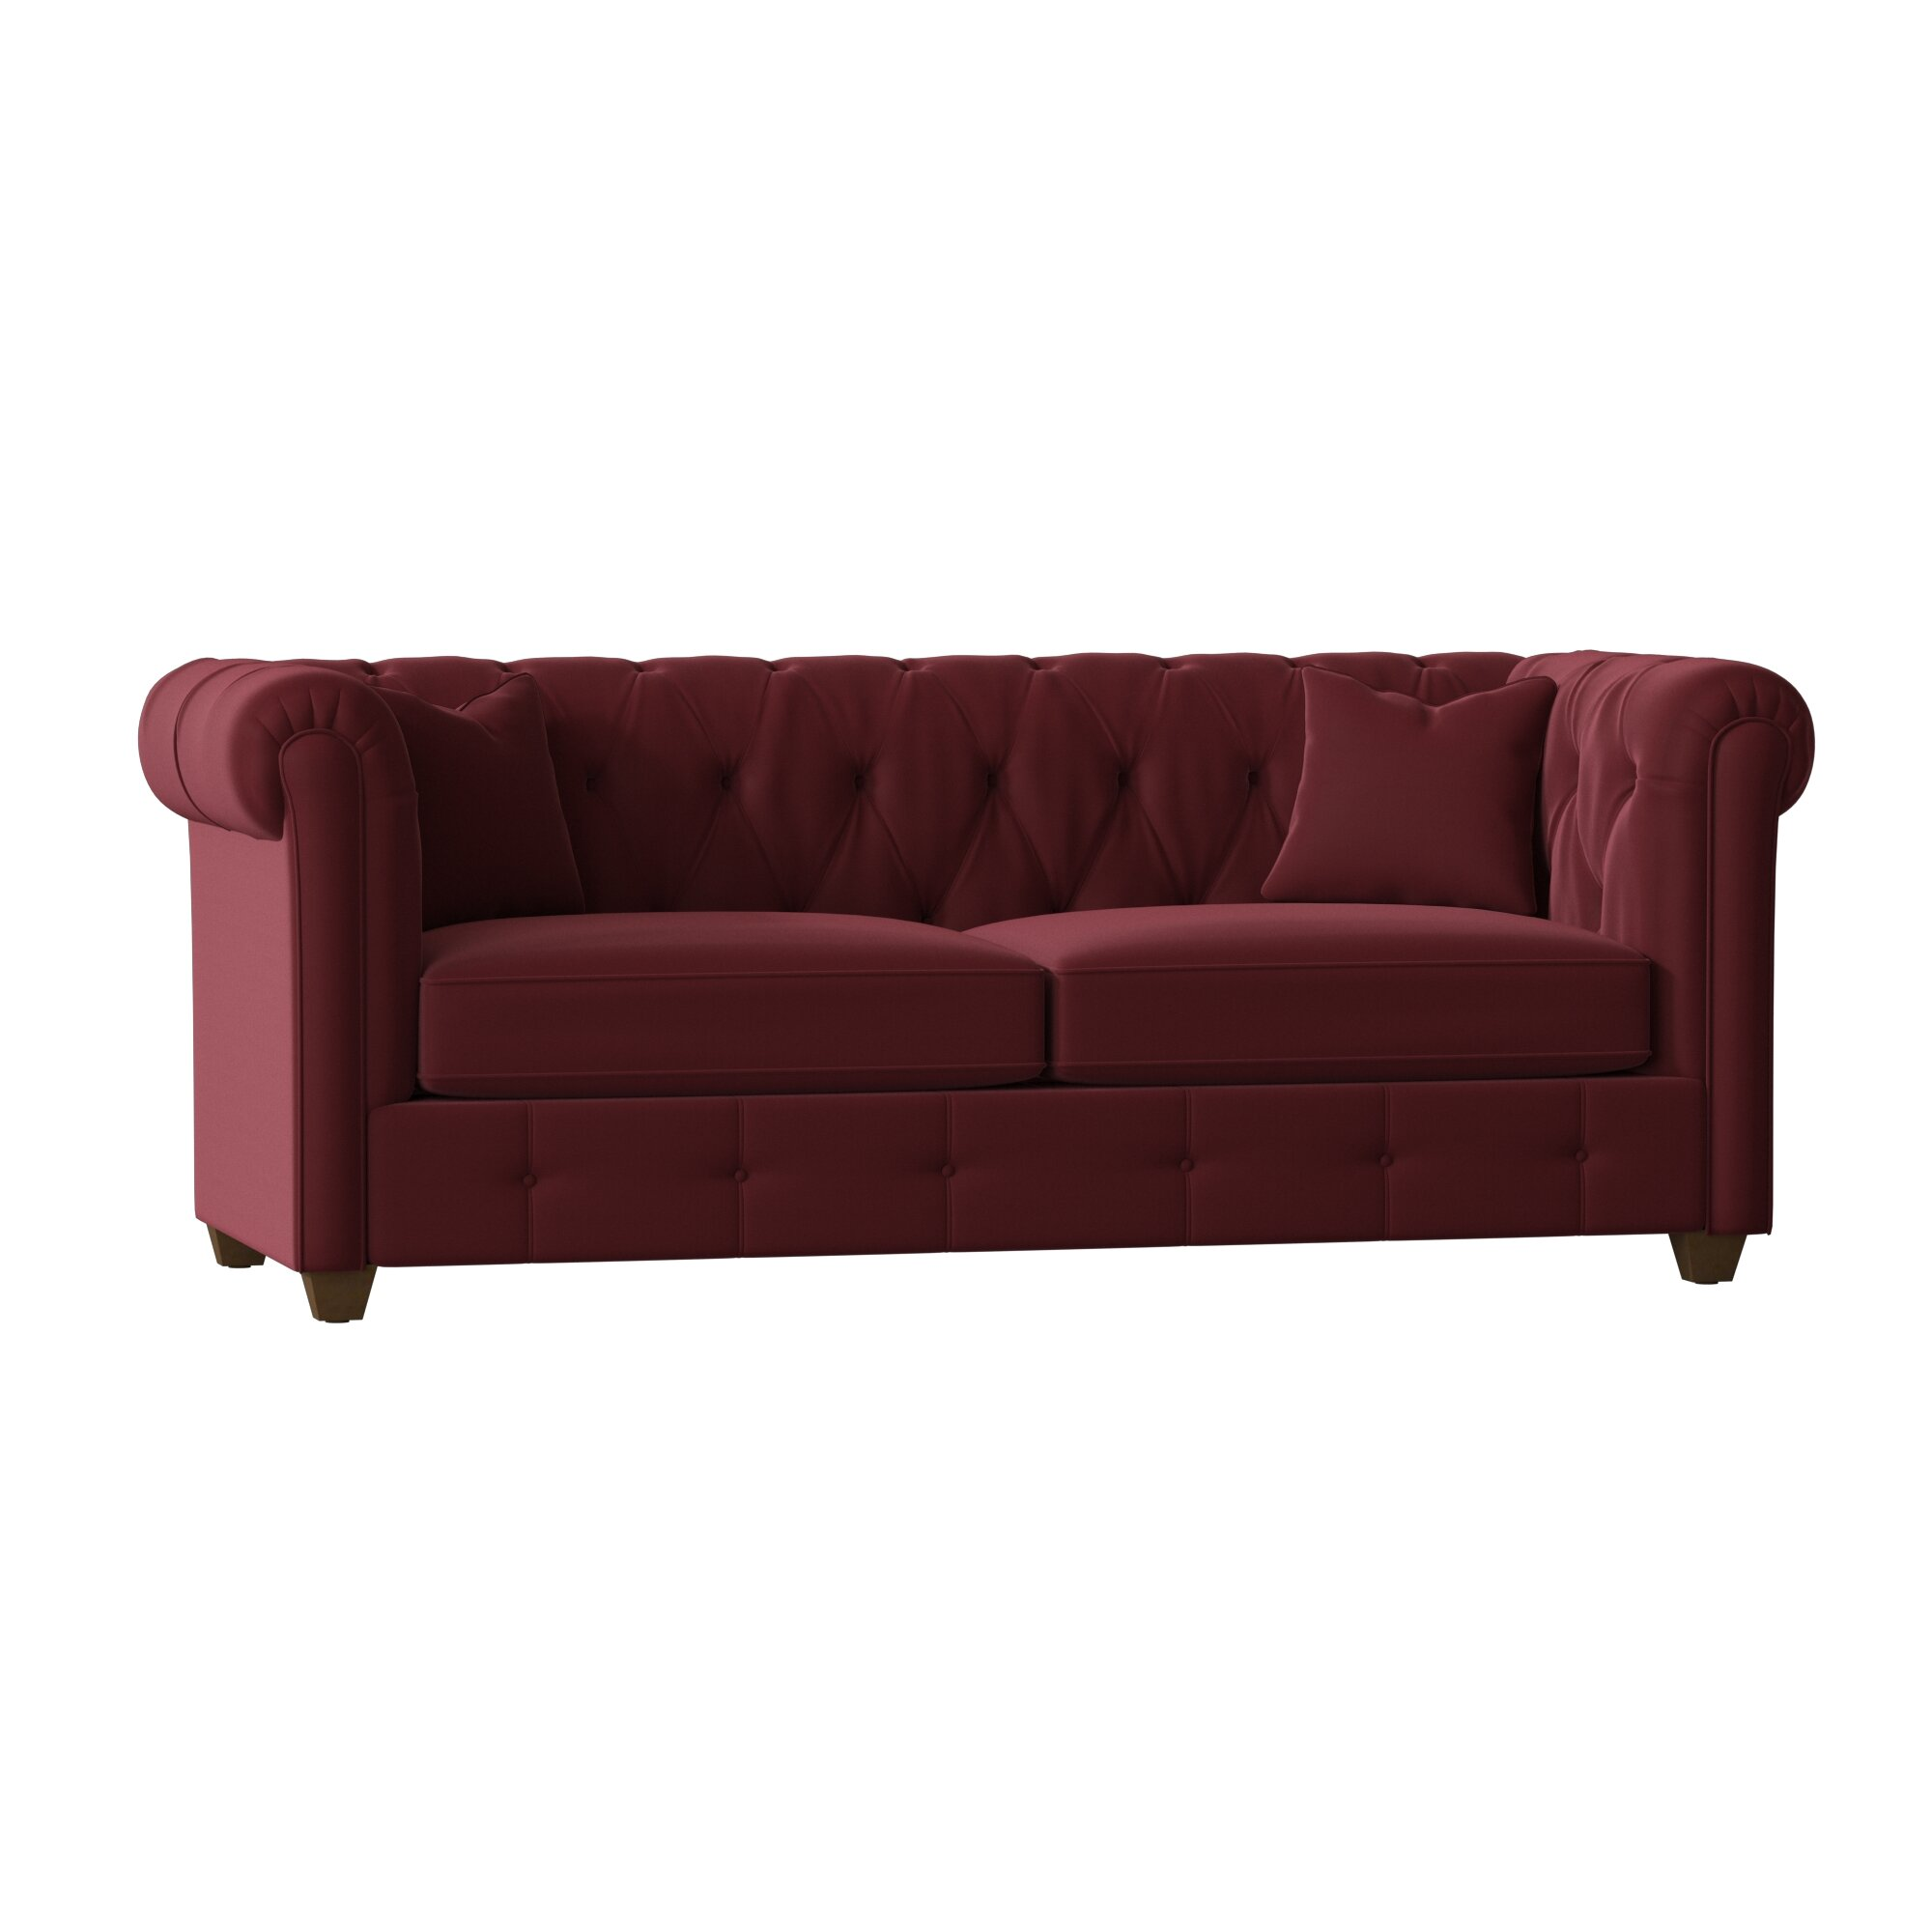 Fantastic Keegan Chesterfield Sofa Inzonedesignstudio Interior Chair Design Inzonedesignstudiocom